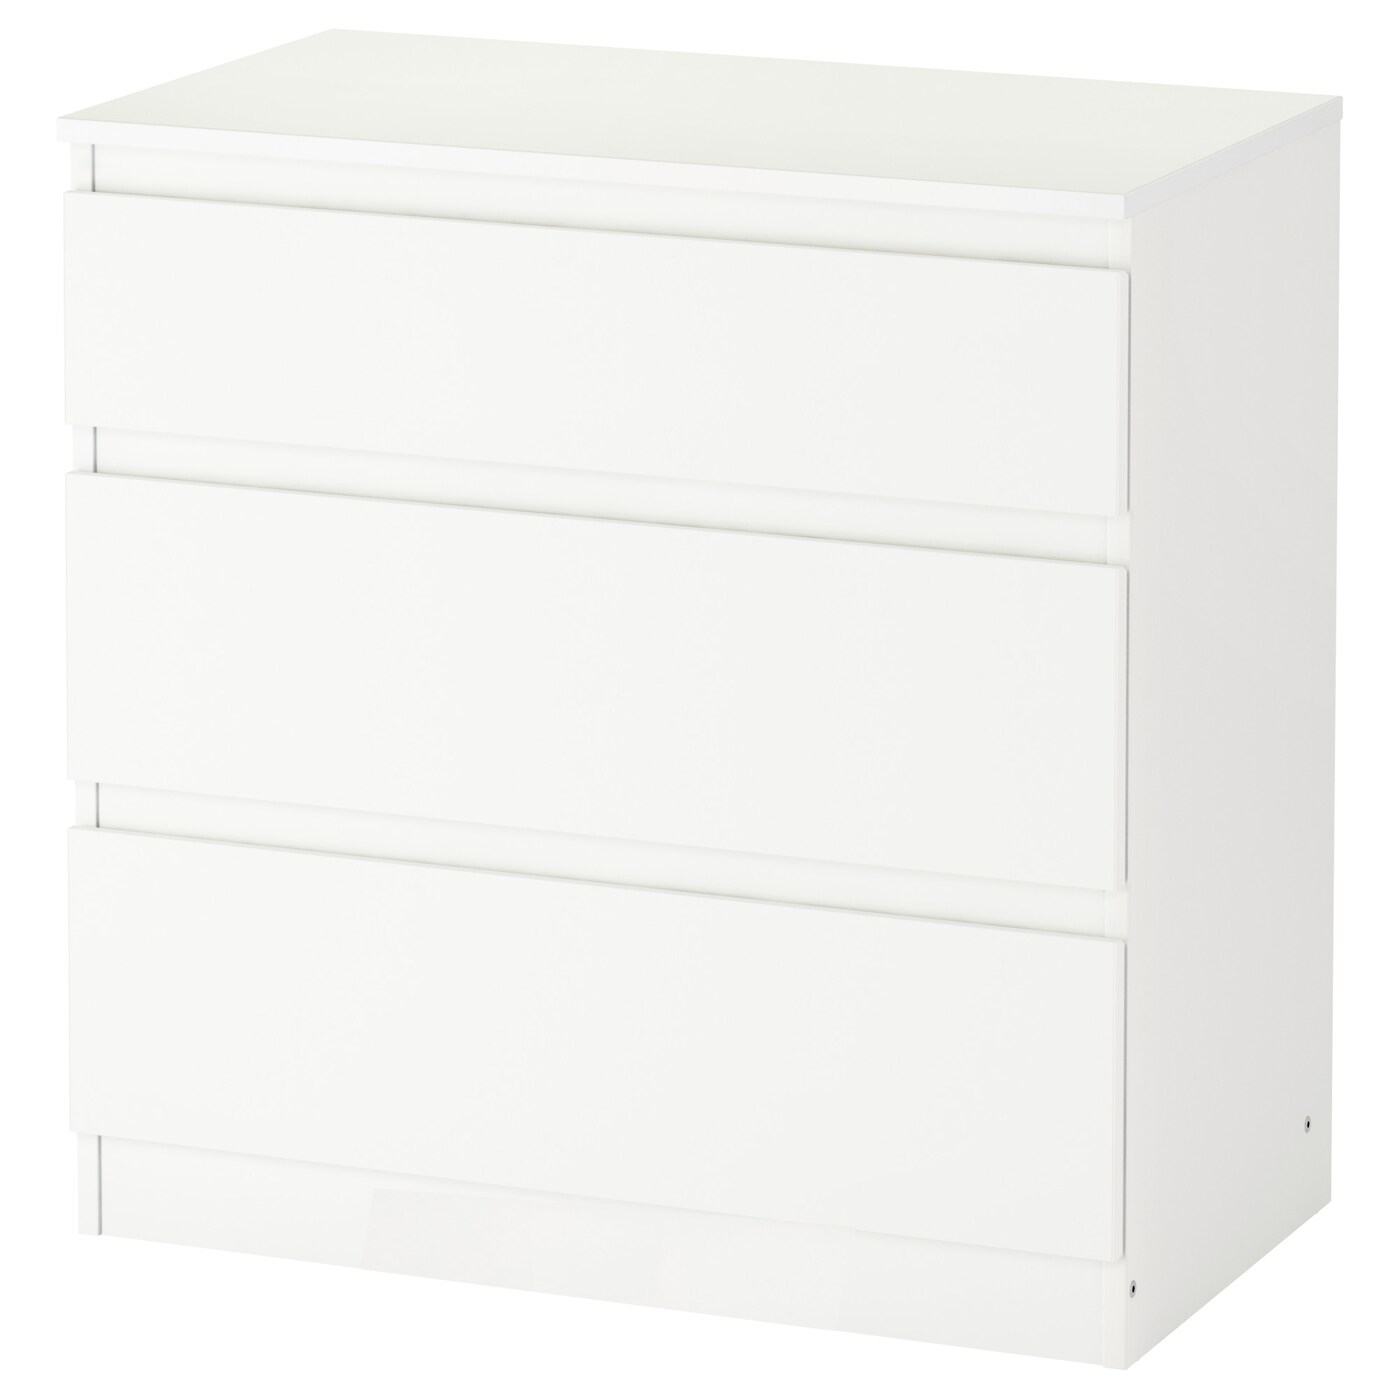 Commodes Ikéa Commodes Ikea Kullen Commode à 3 Tiroirs Blanc 70 X 72 Cm